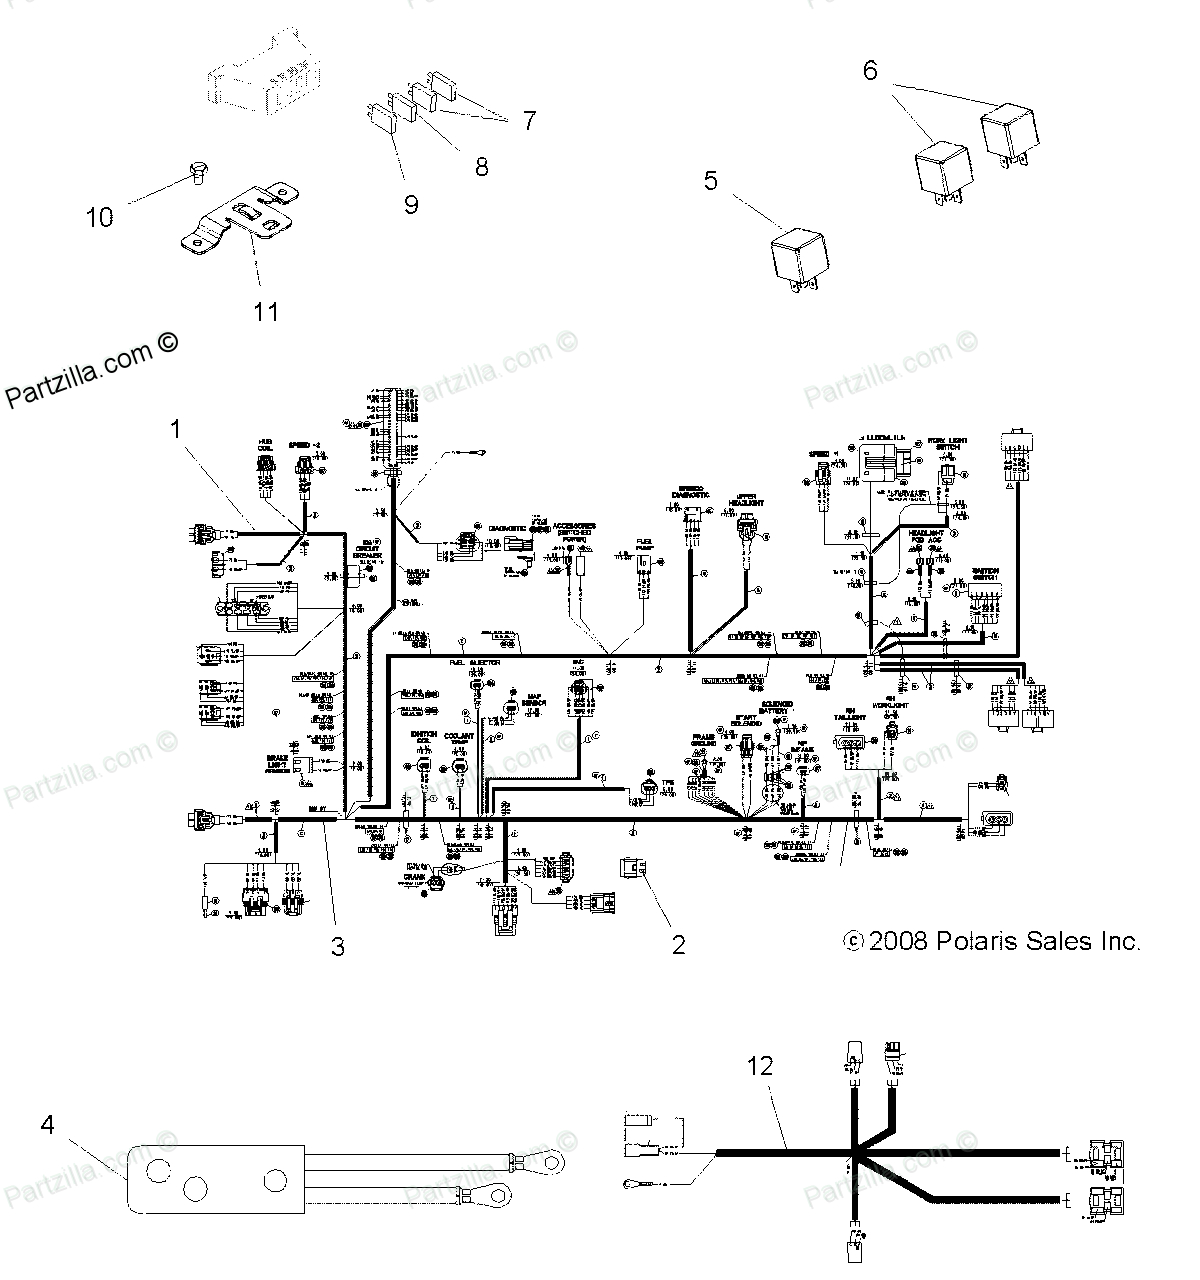 Wiring Diagram Polaris 400